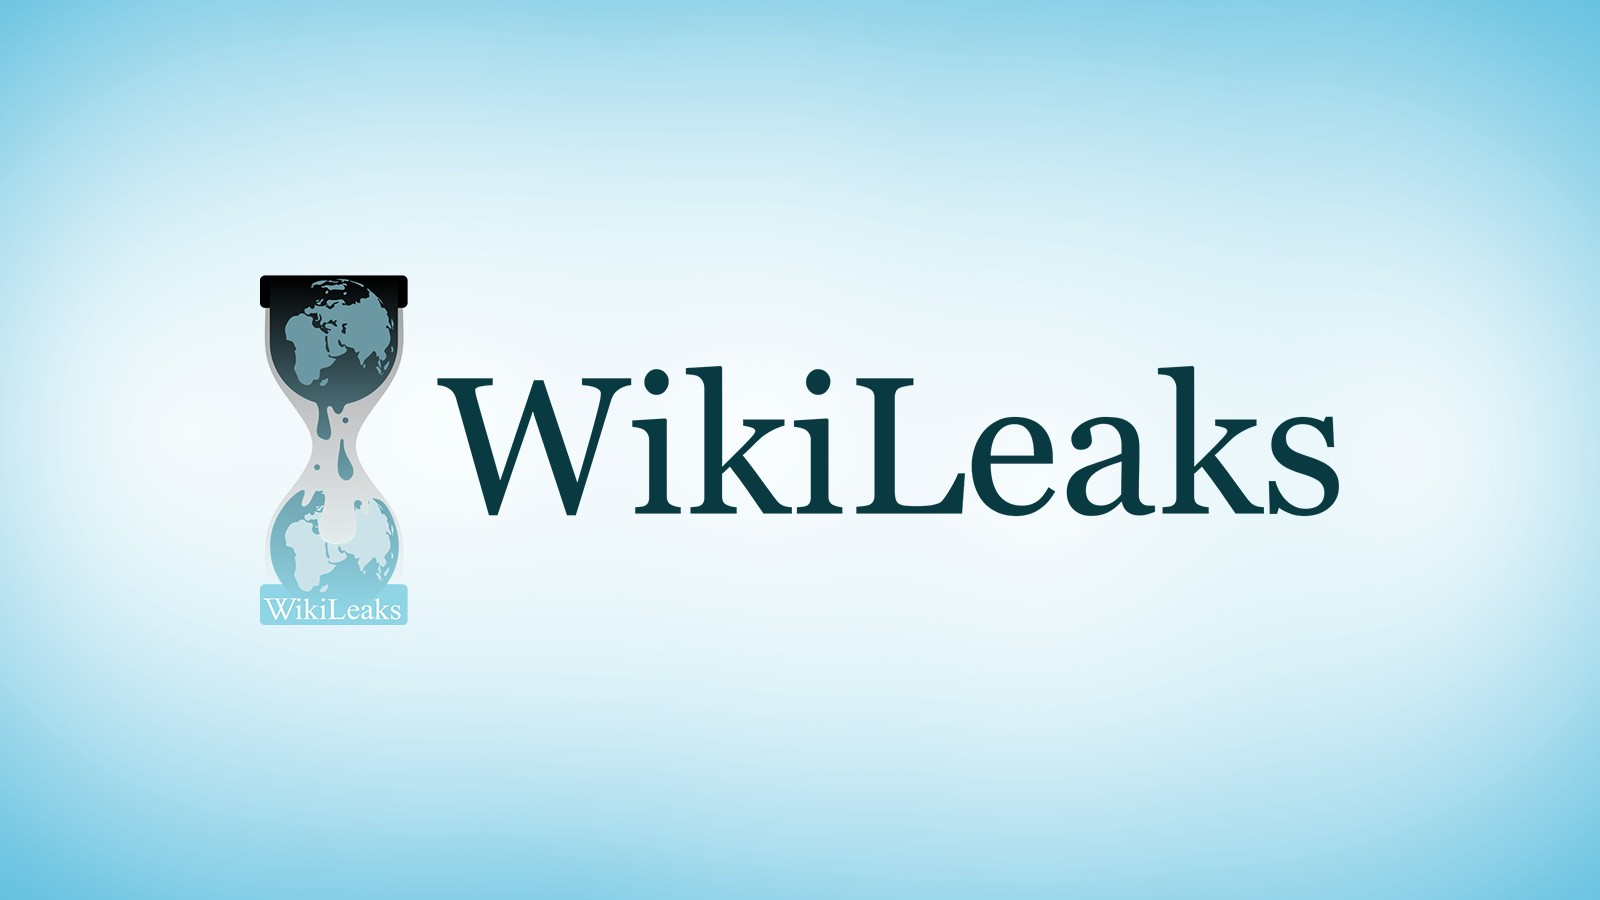 analytics company contacted wikileaks about clinton emails  analytics company contacted wikileaks about clinton emails cnnpolitics